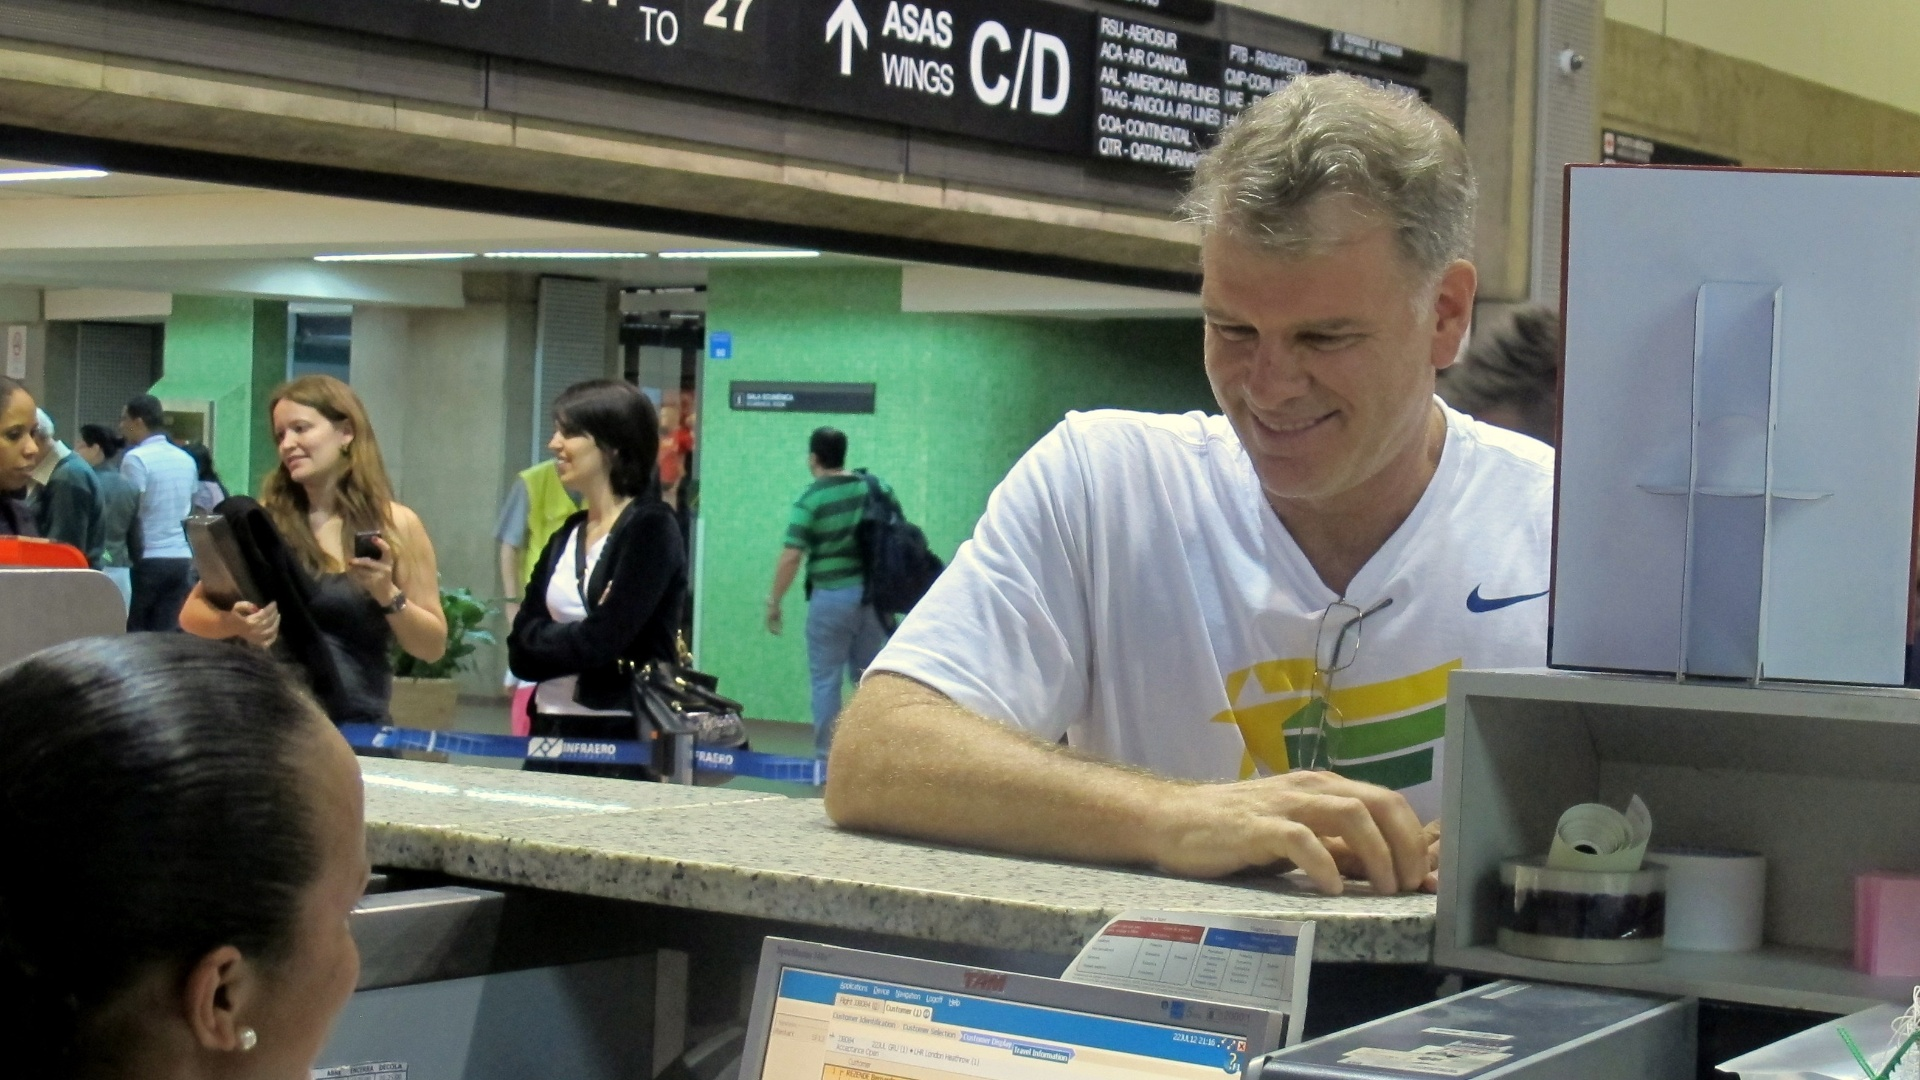 Bernardinho faz check-in no aeroporto de Guarulhos no embarque da seleo masculina de vlei para Londres (22/07/2012)